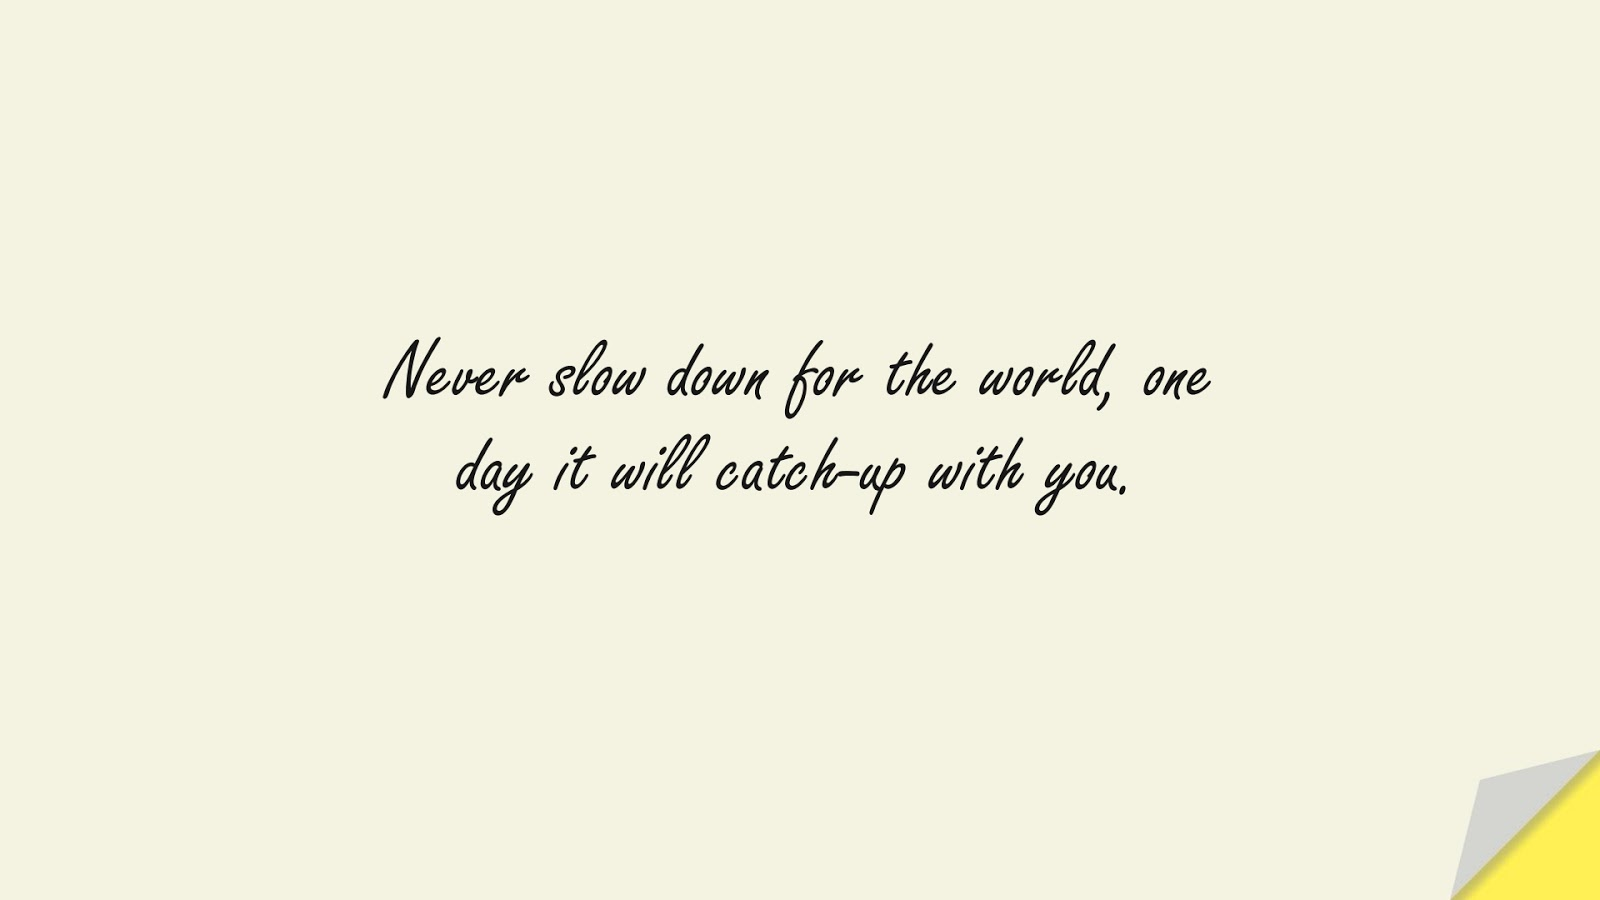 Never slow down for the world, one day it will catch-up with you.FALSE